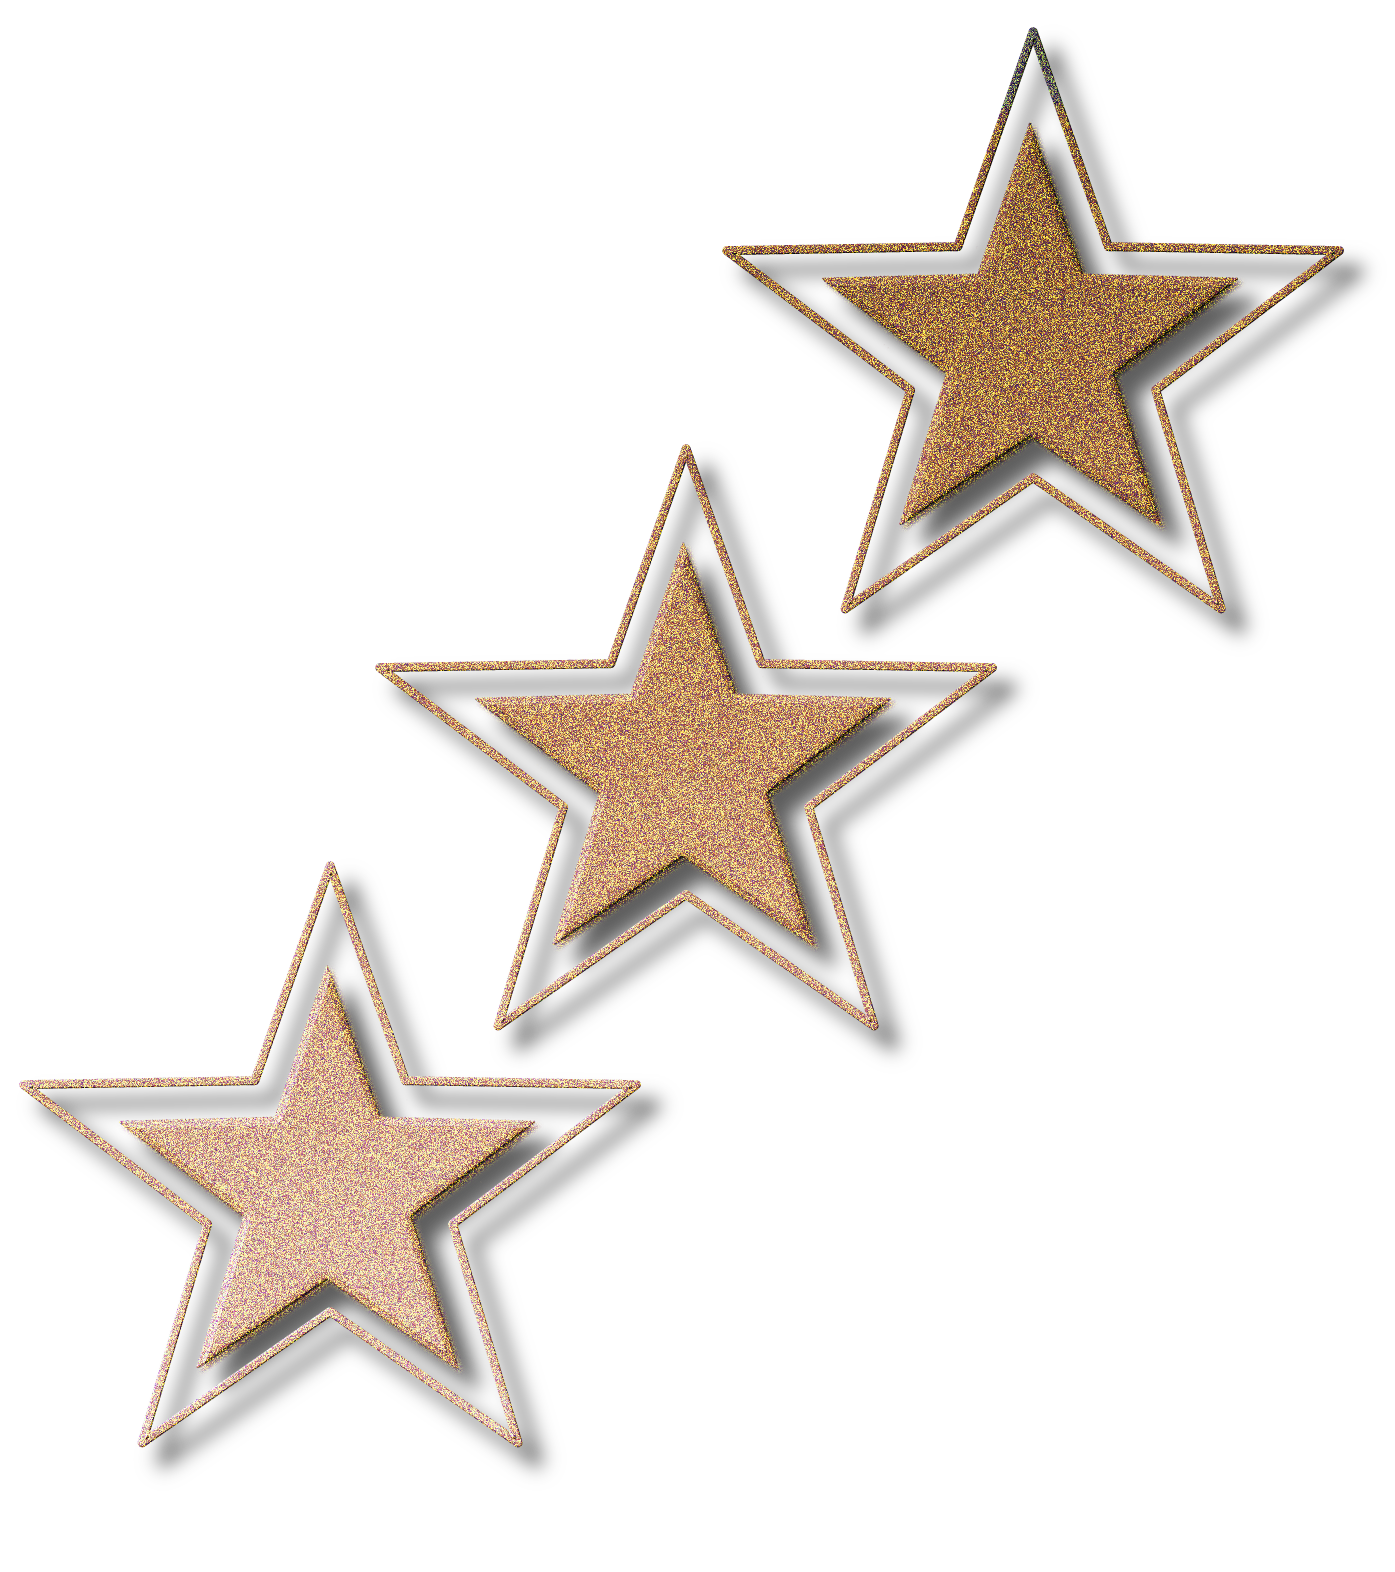 Star sparkle clipart png transparent Star Clipart | Stars clipart⭐ | Pinterest | Star clipart png transparent